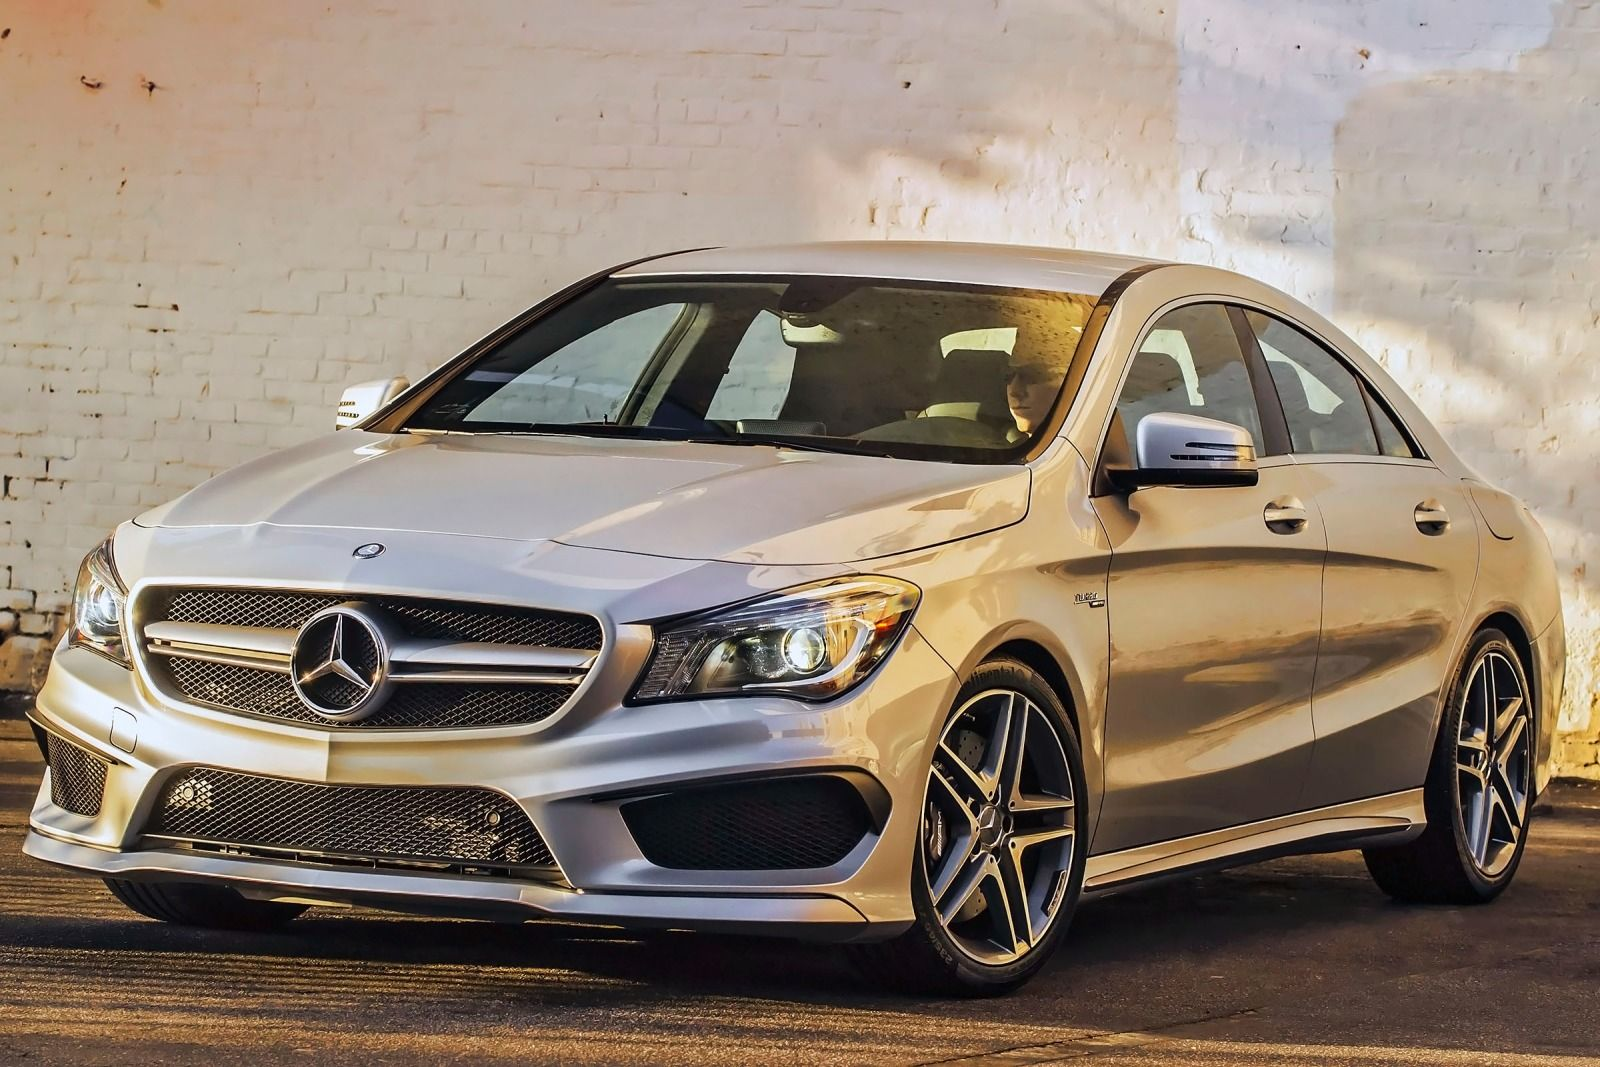 2015 mercedes benz cla - photo #26